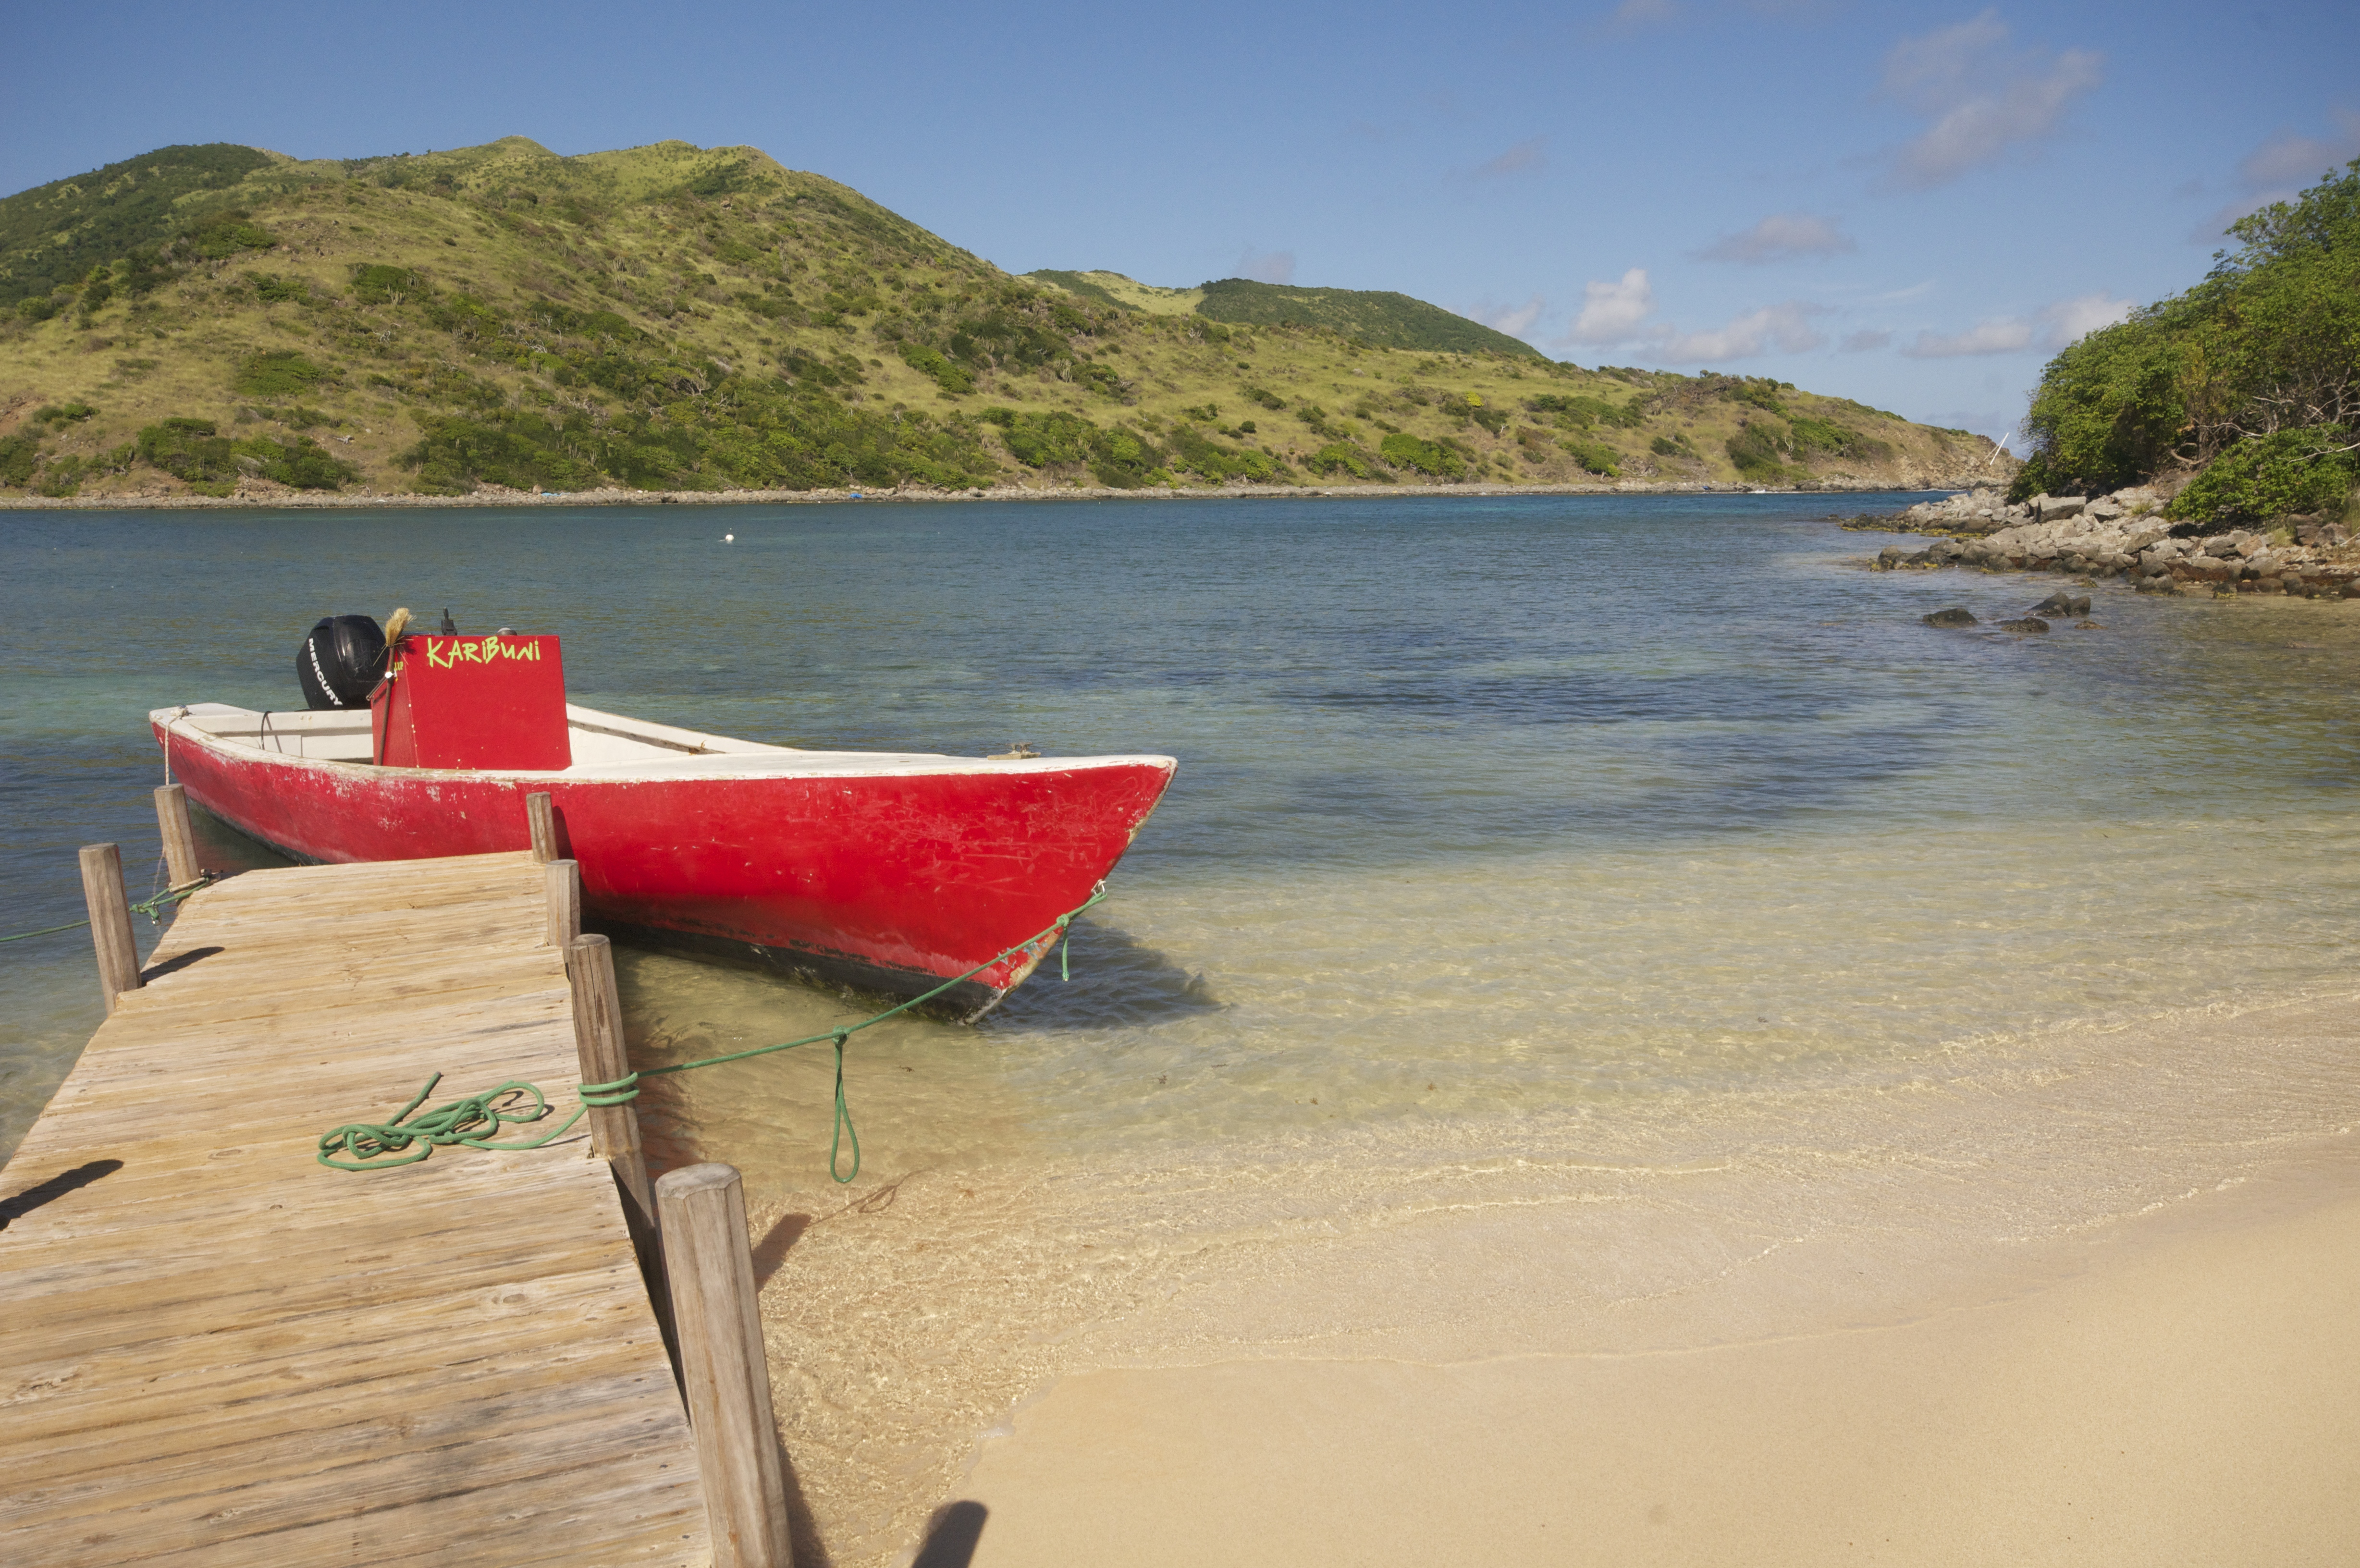 A boat rests at a dock on Pinel Island, an idyllic islet off St. Martin's east coast. Pinel offers soft, clean beaches, outdoor restaurants, snorkeling and short walking trails. (John Briley)